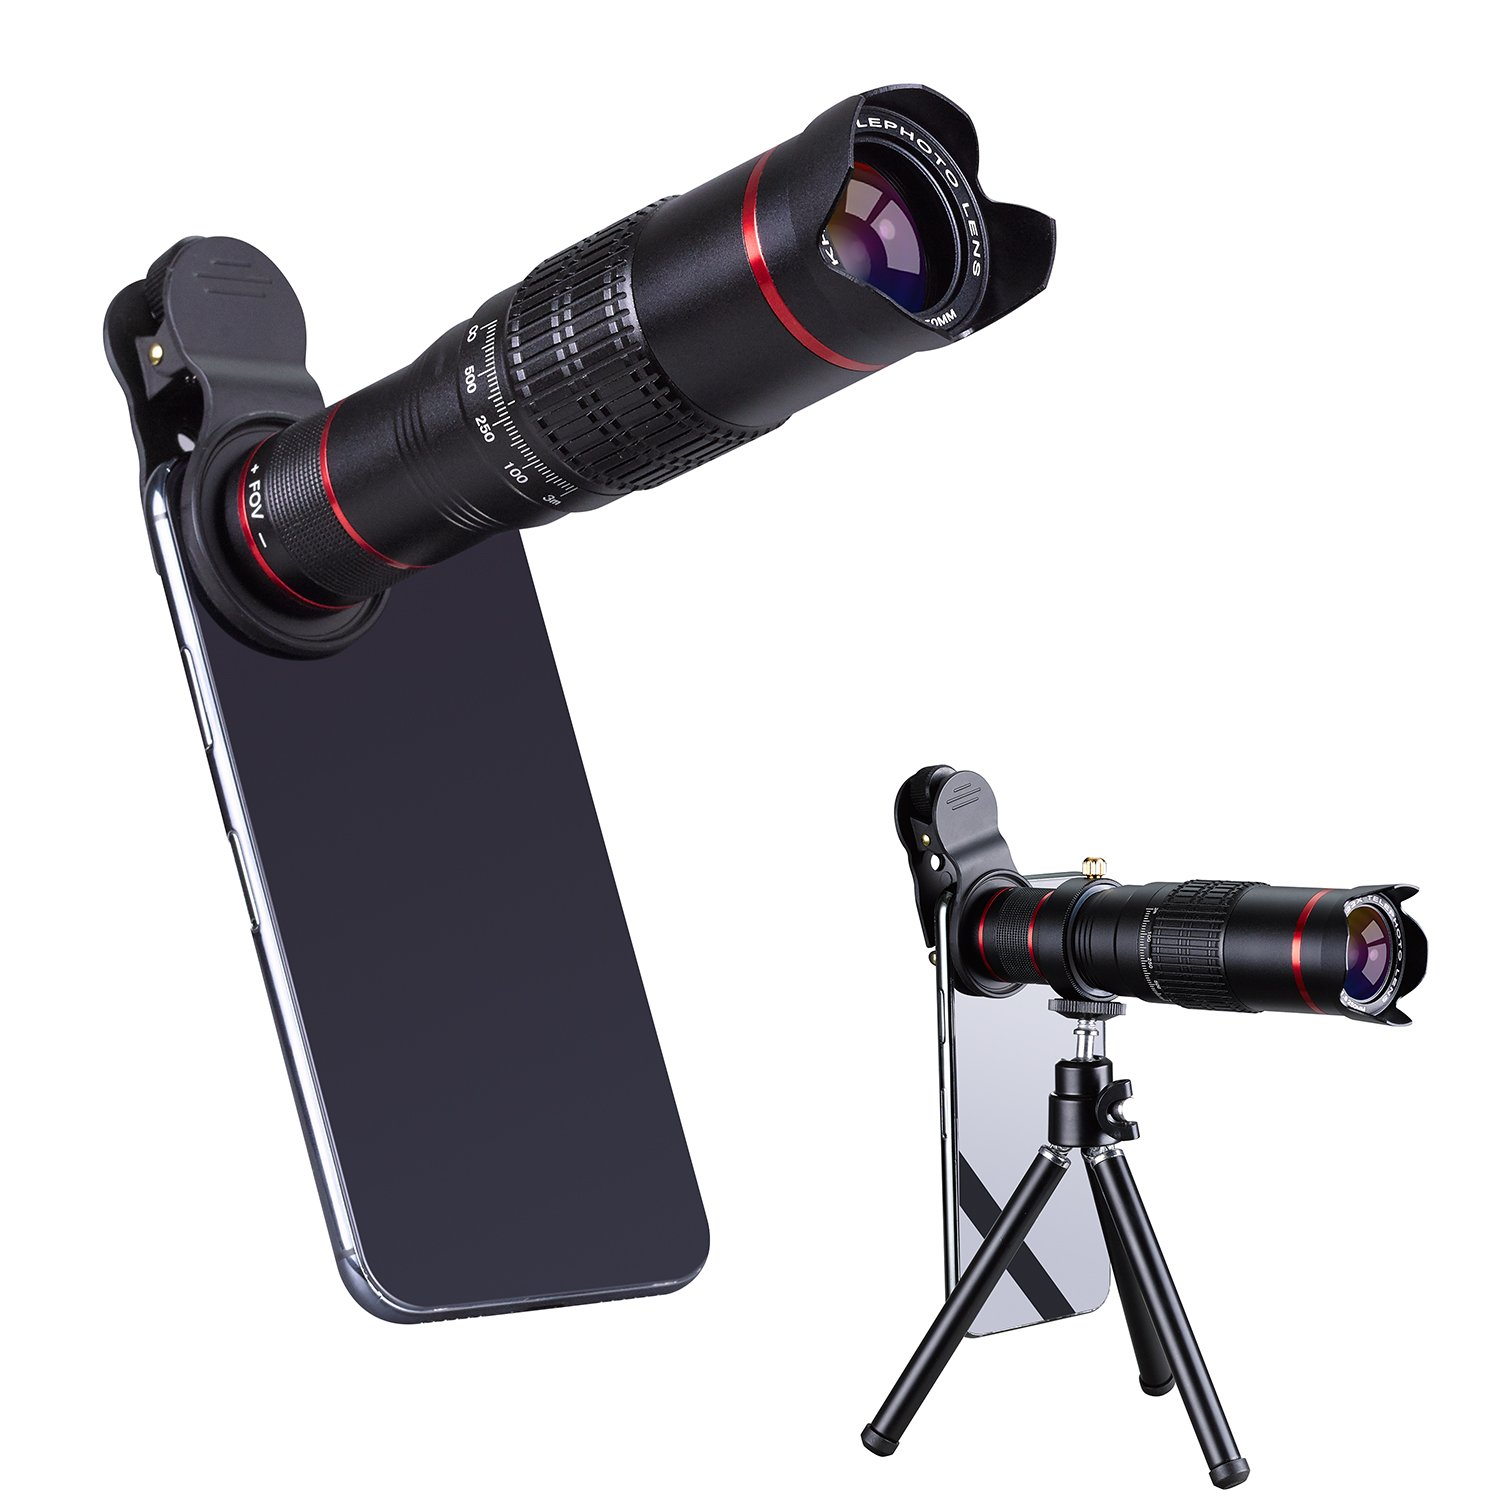 HXGD Mobile Camera Lens 22x Phone Camera Telephoto Lens, Double Regulation Phone Lens Attchment with Tripod for iPhoneX/8/7/6,Samsung.Huawei Most Smartphone by HXGD